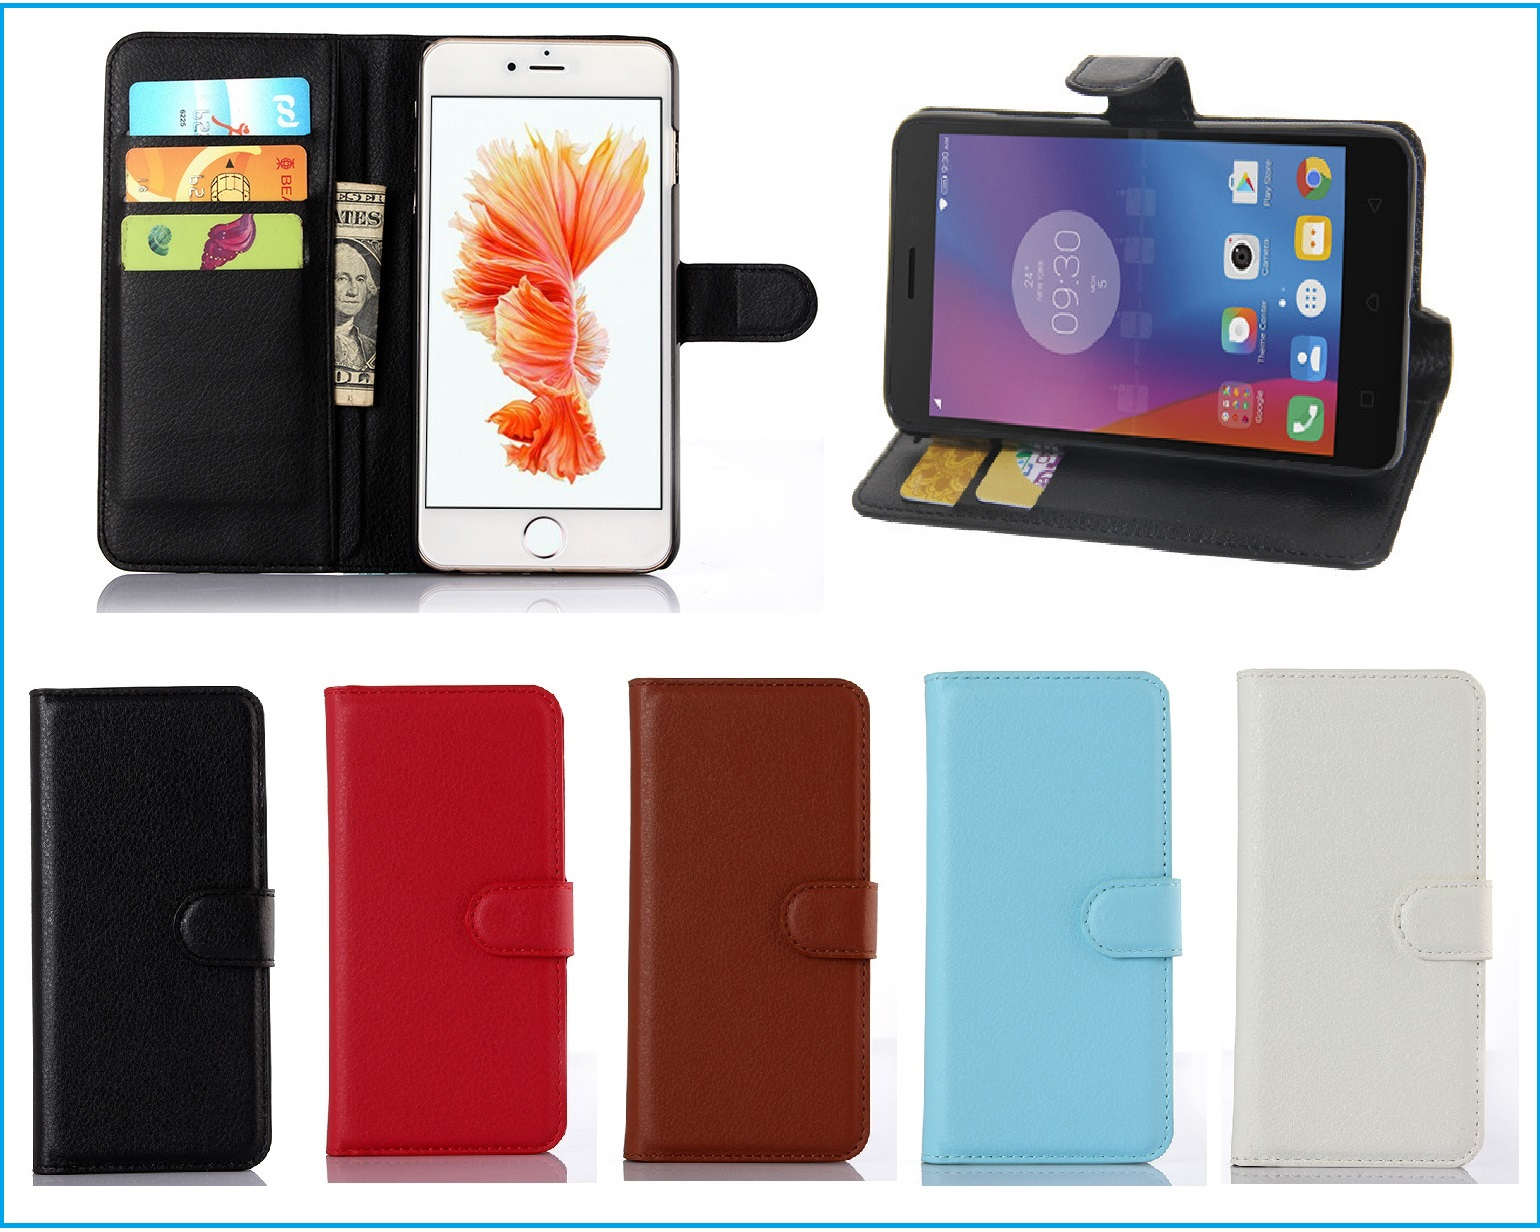 5 Colors Super!! Fly IQ4417 Quad ERA Energy 3 Case Flip Fashion Leather Exclusive Protective 100% Special Phone Cover+Tracking